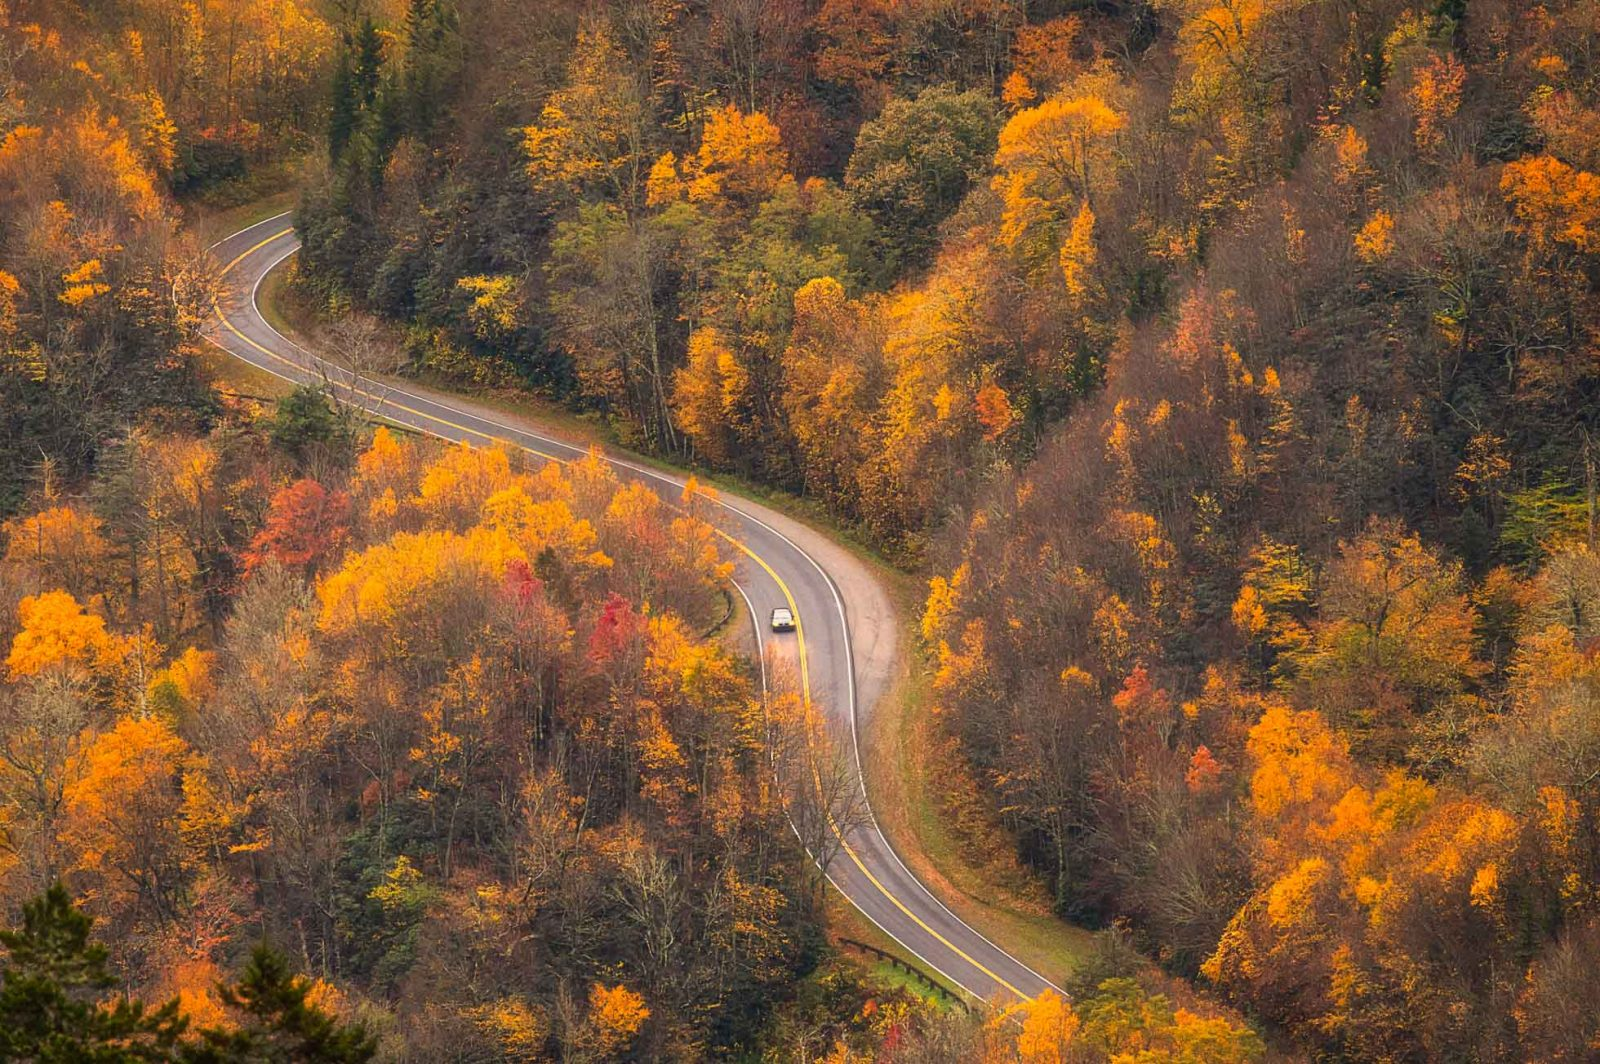 Winding through Autumn